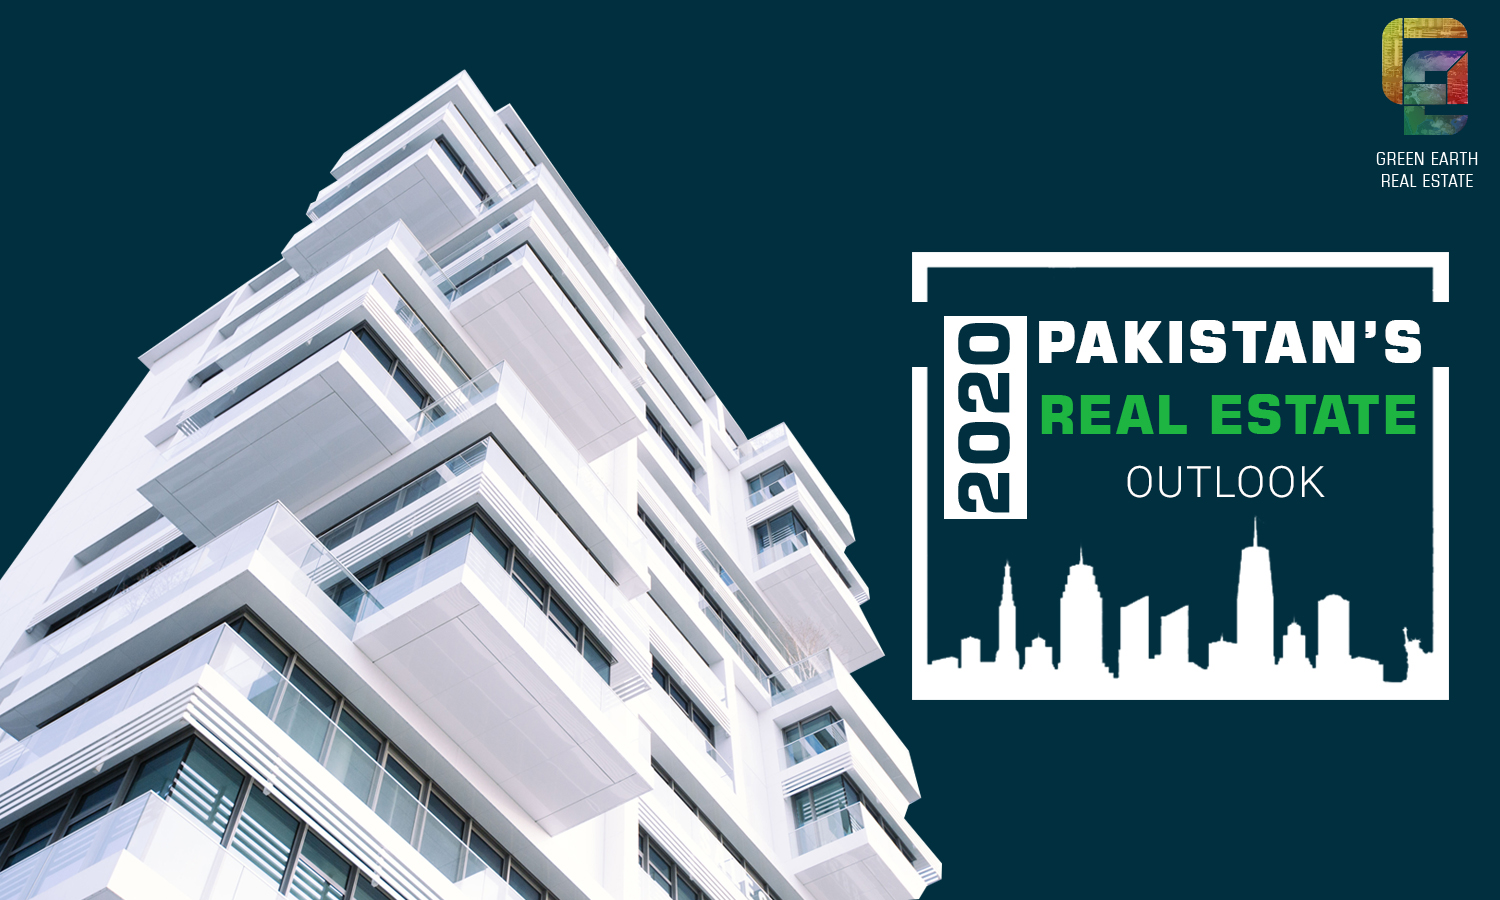 Pakistan 2020 real estate outlook